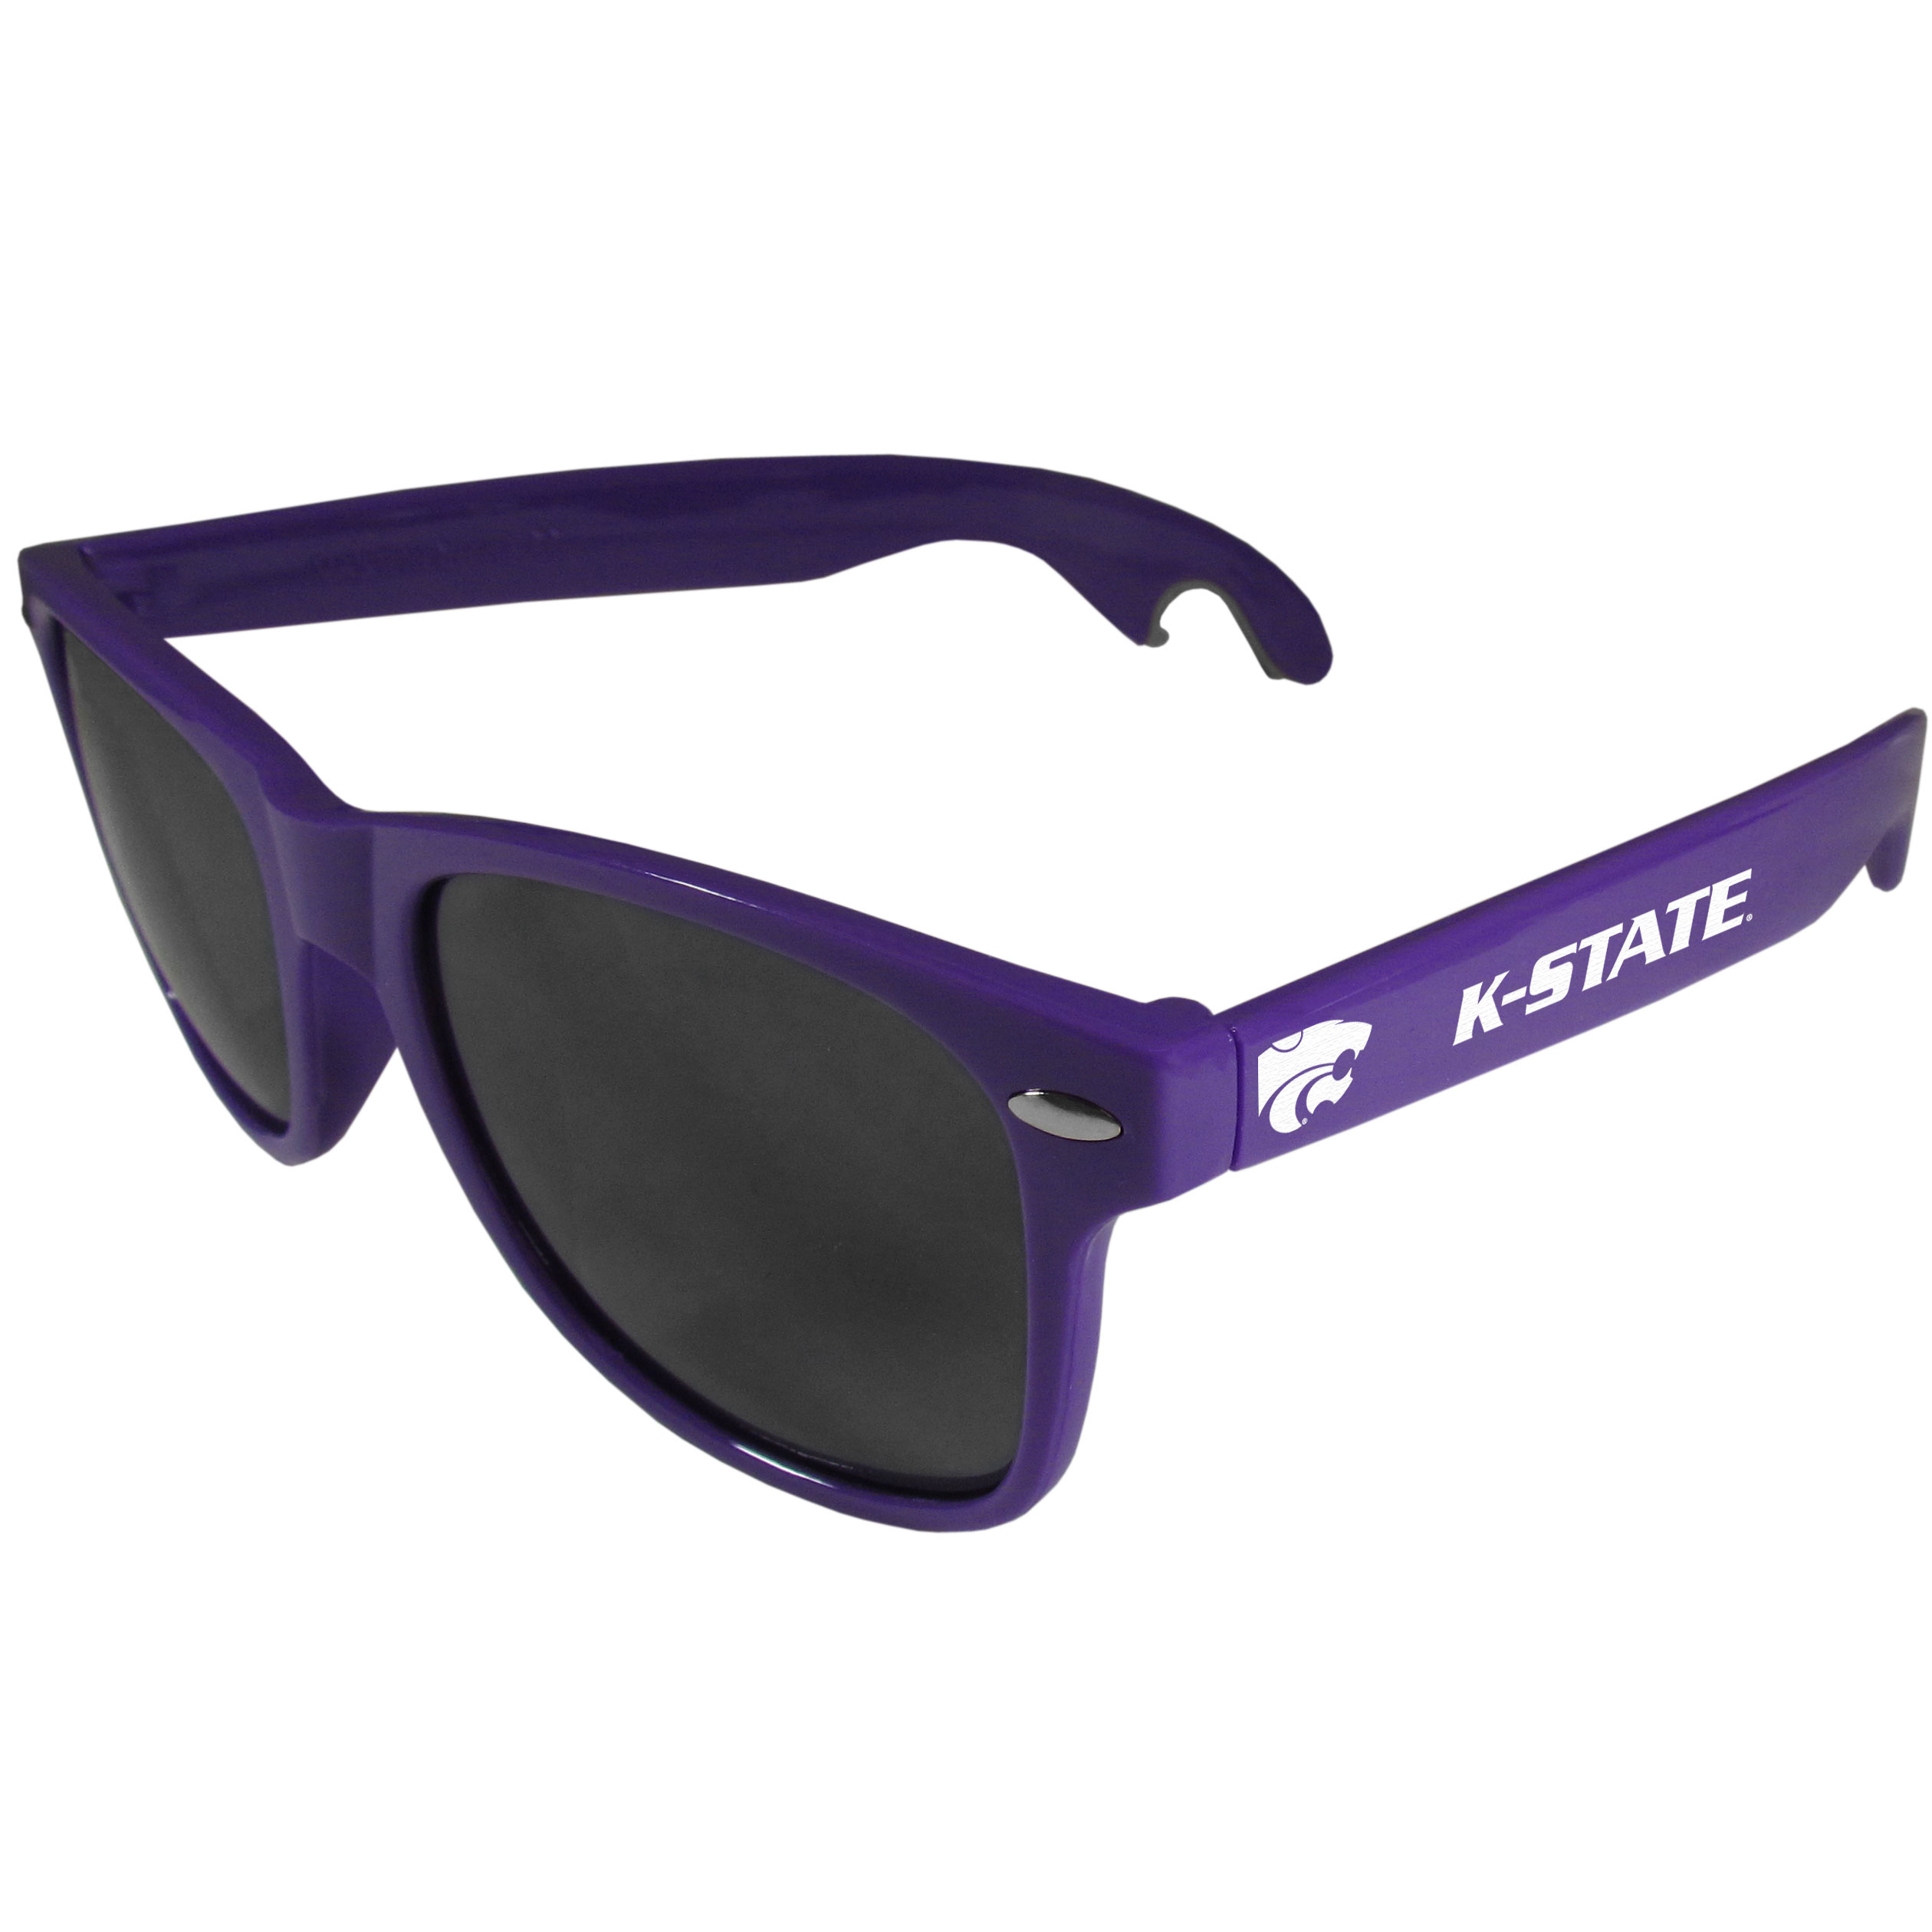 Kansas St. Wildcats Beachfarer Bottle Opener Sunglasses, Purple - Seriously, these sunglasses open bottles! Keep the party going with these amazing Kansas St. Wildcats bottle opener sunglasses. The stylish retro frames feature team designs on the arms and functional bottle openers on the end of the arms. Whether you are at the beach or having a backyard BBQ on game day, these shades will keep your eyes protected with 100% UVA/UVB protection and keep you hydrated with the handy bottle opener arms.